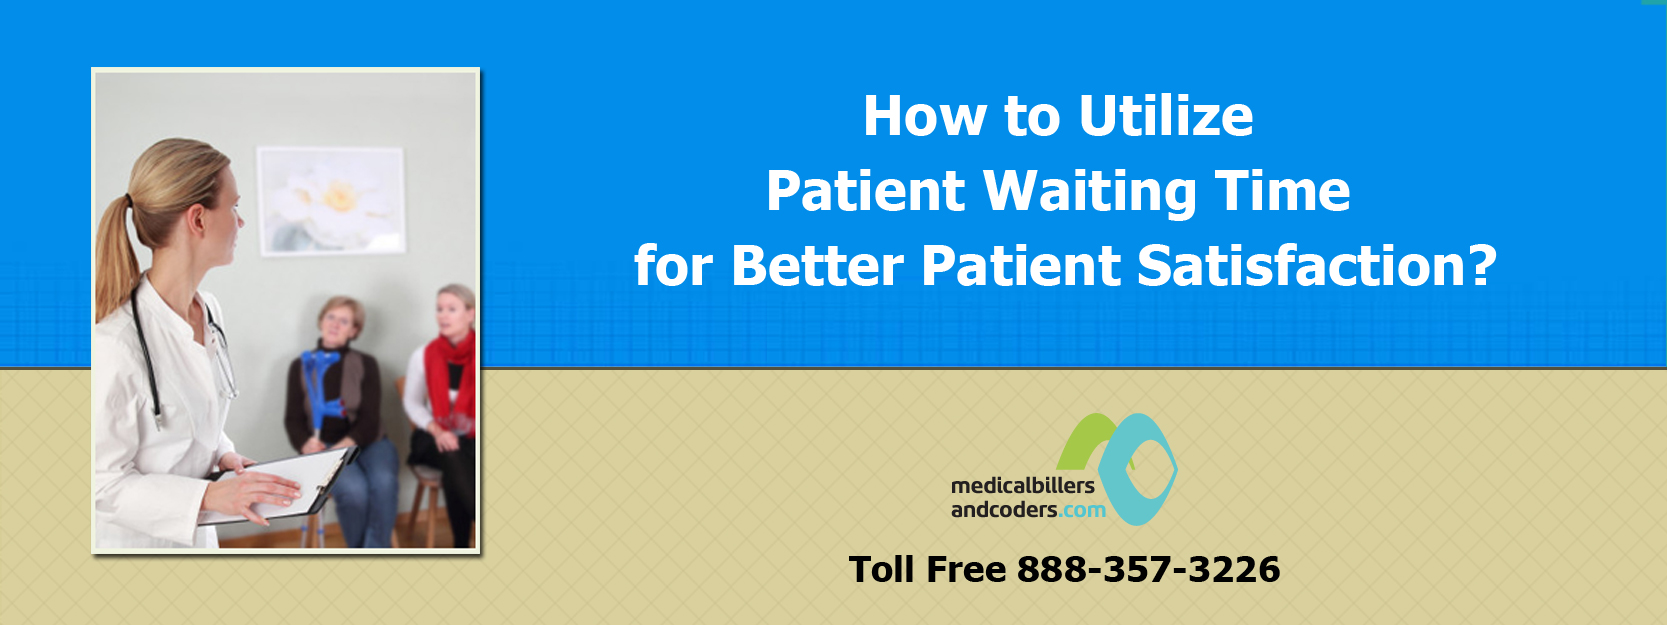 How to Utilize Patient Waiting Time for Better Patient Satisfaction